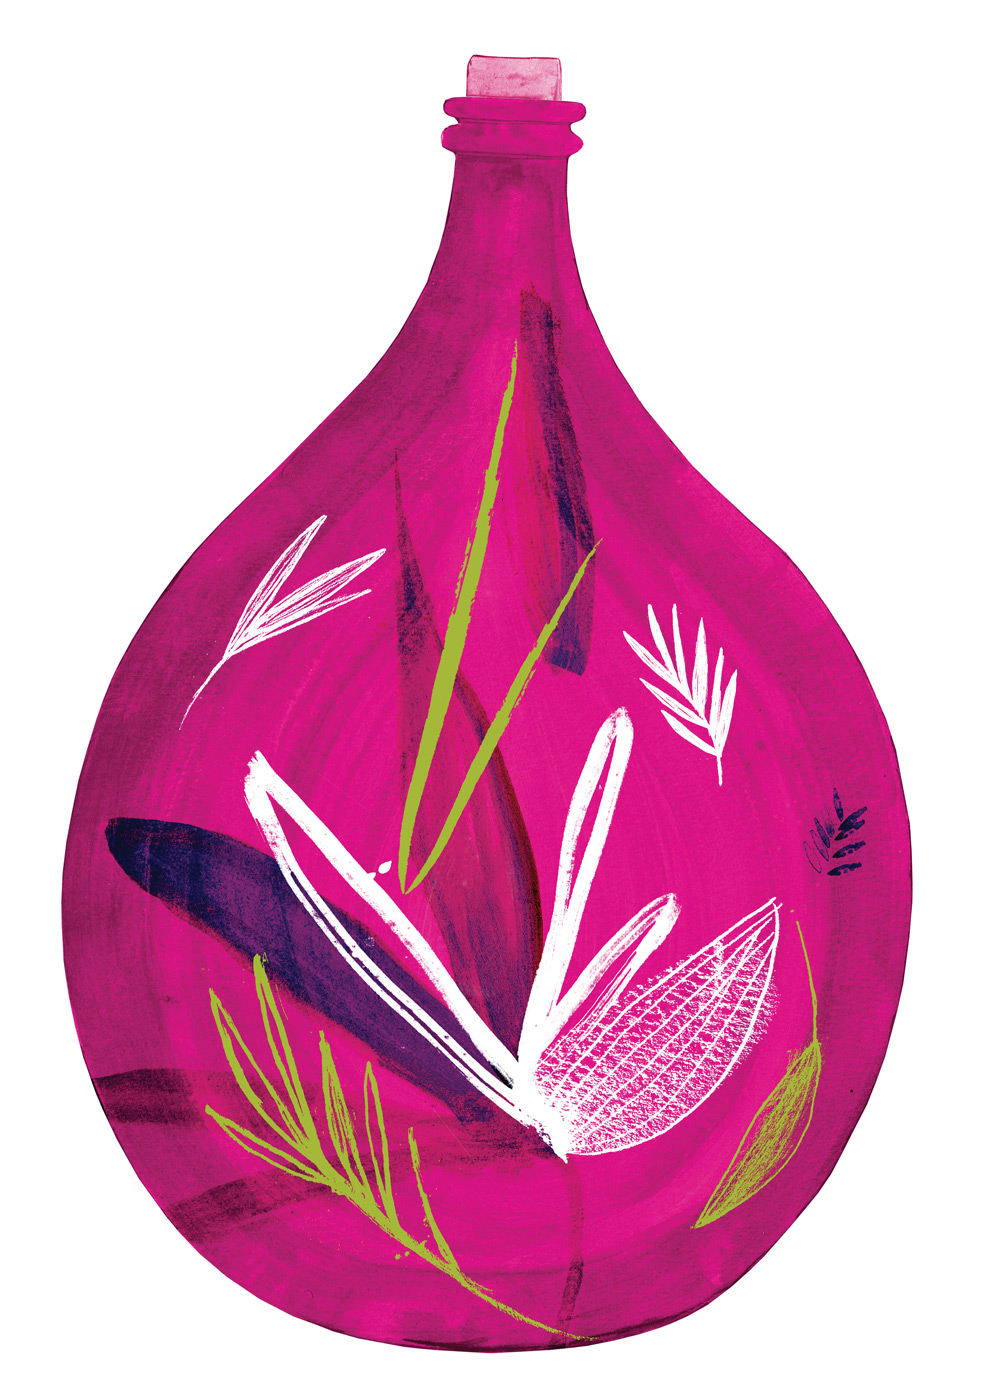 Made For life Organics Pink Demijohn hand painted illustration by Wild Bear Designs